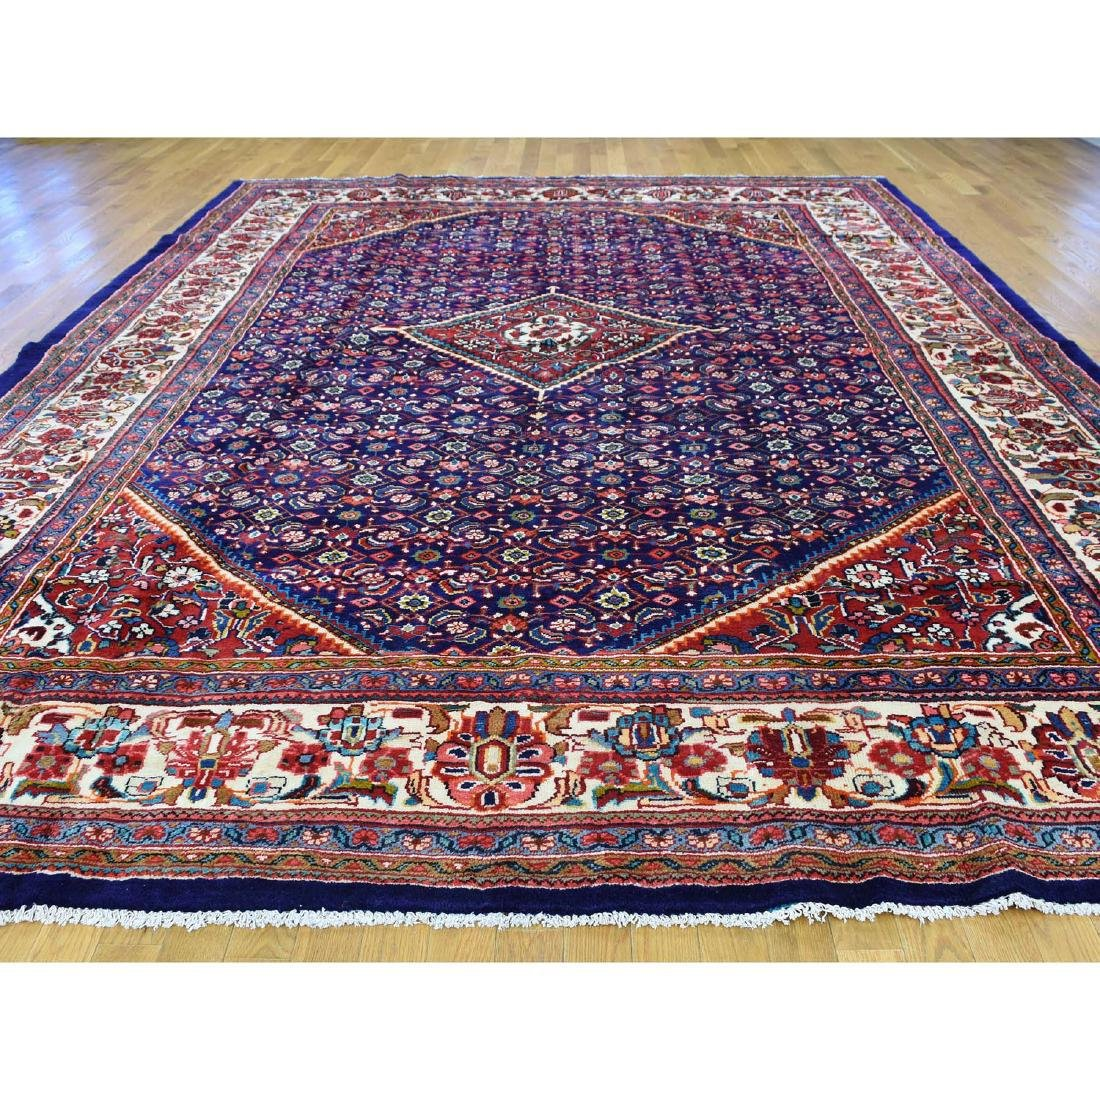 Hand Knotted Persian Mahal Pure Wool Blue Rug 10x13 - 2